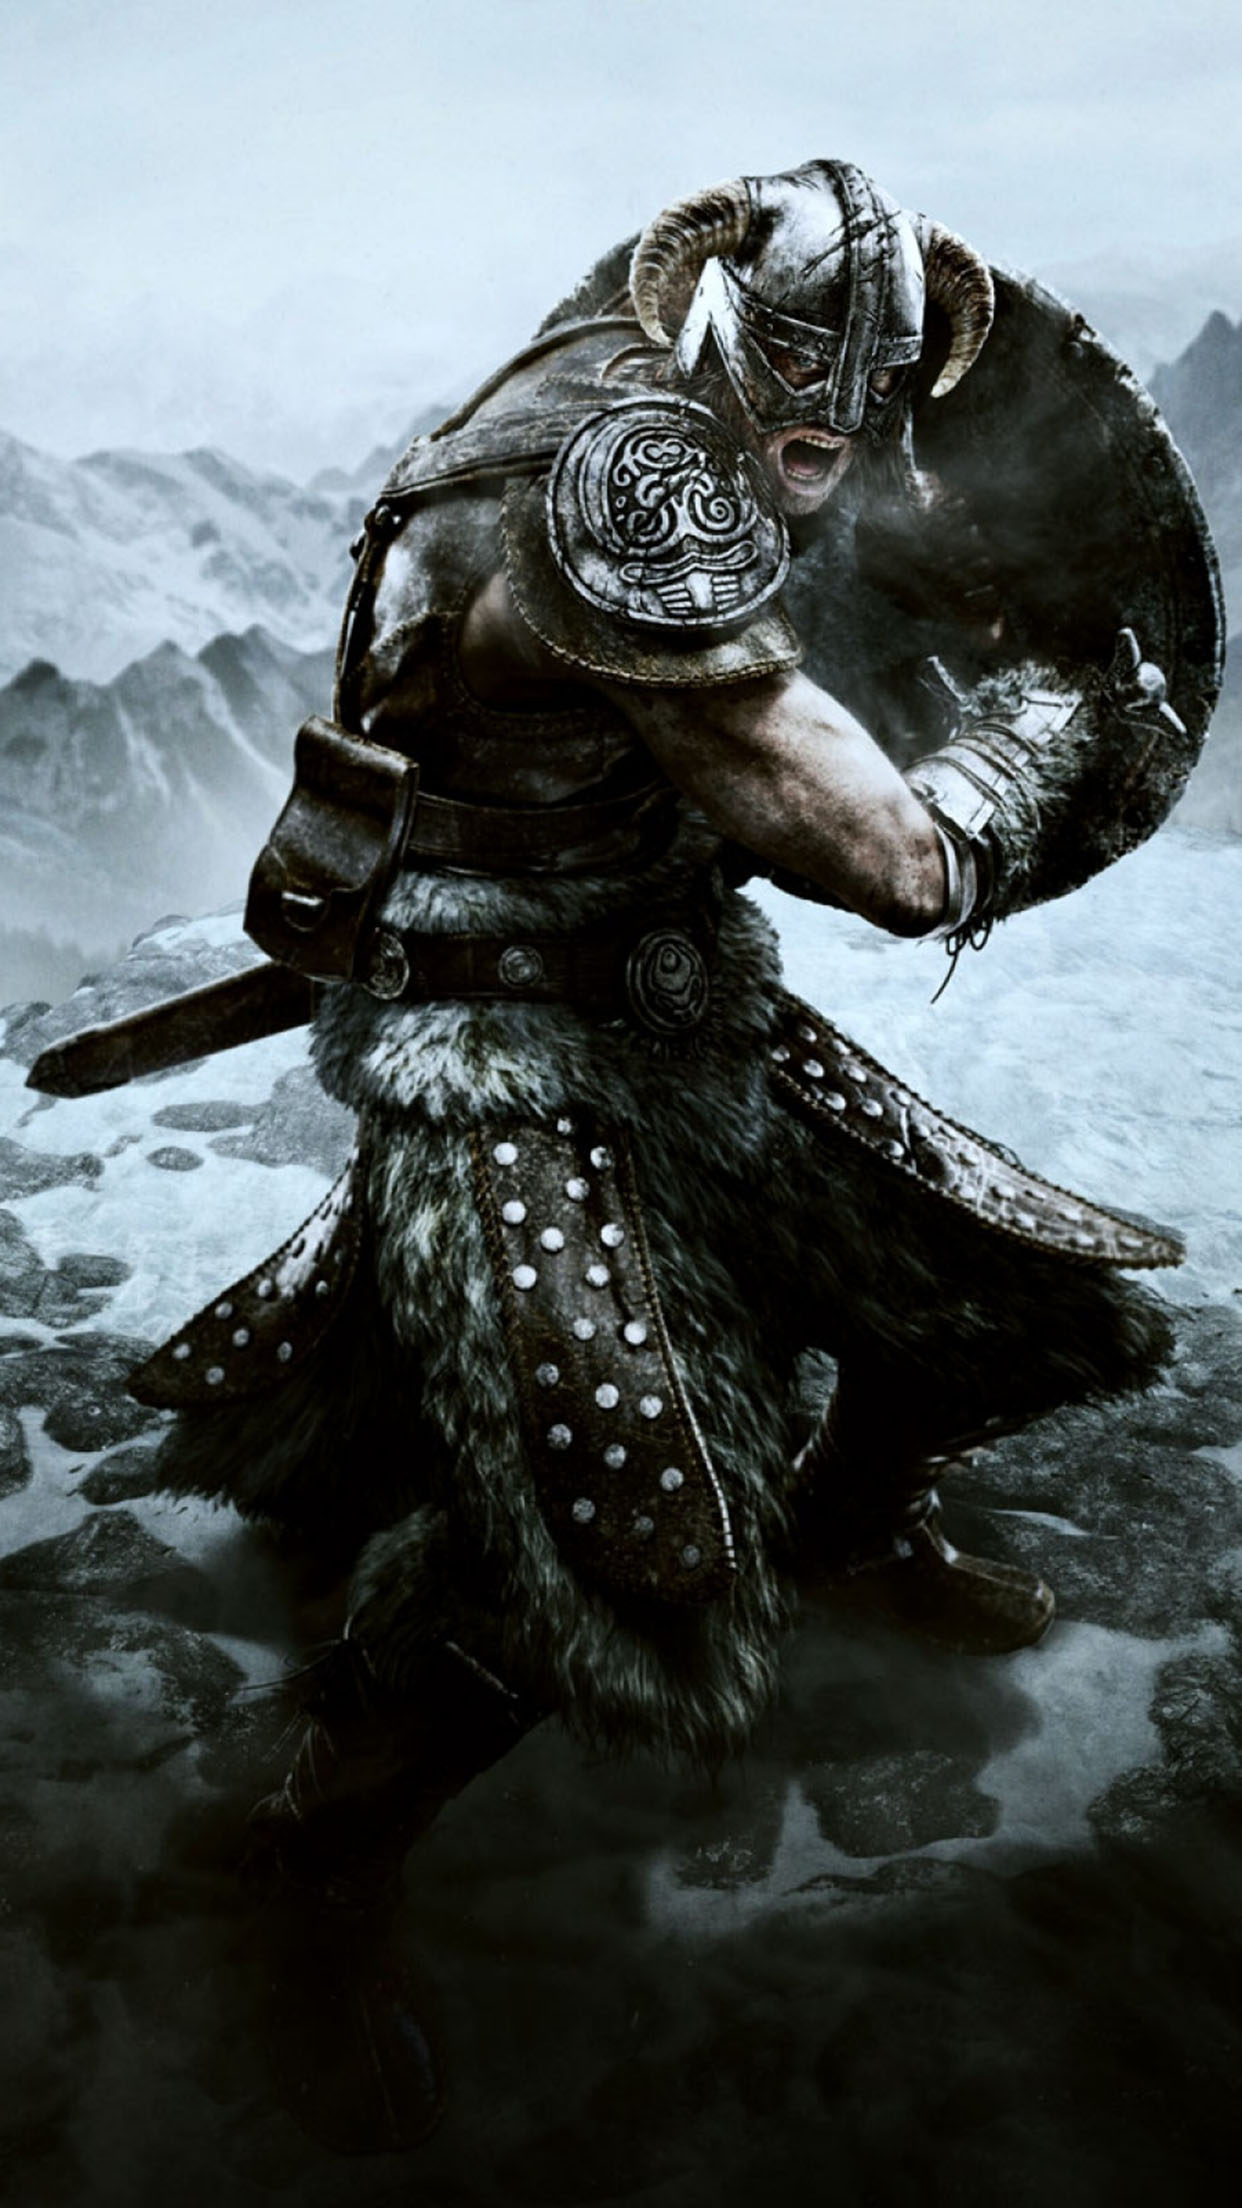 Skyrim Skyrim 1 3Wallpapers iPhone Parallax Skyrim 1